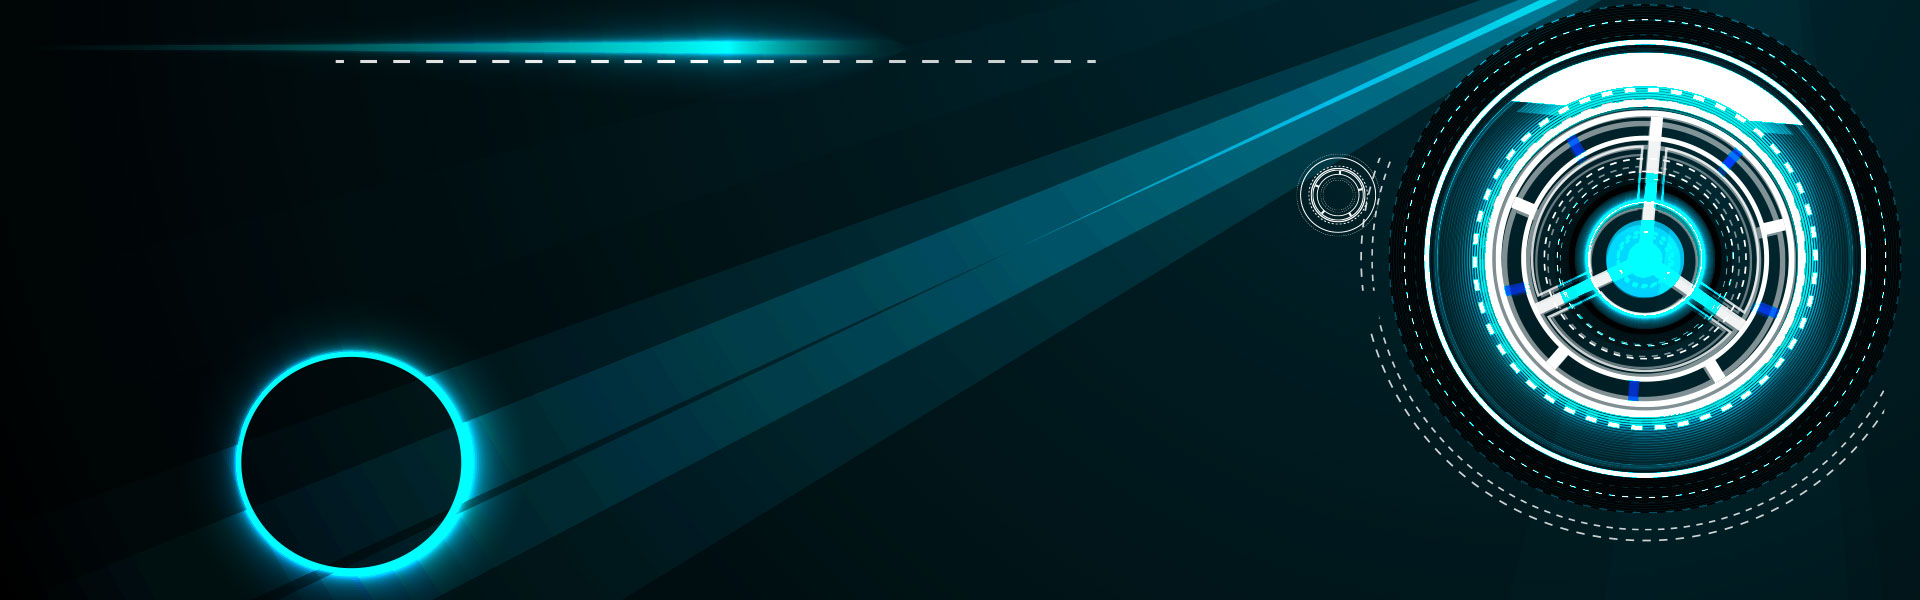 digital technology blue banner background cool beam  blue